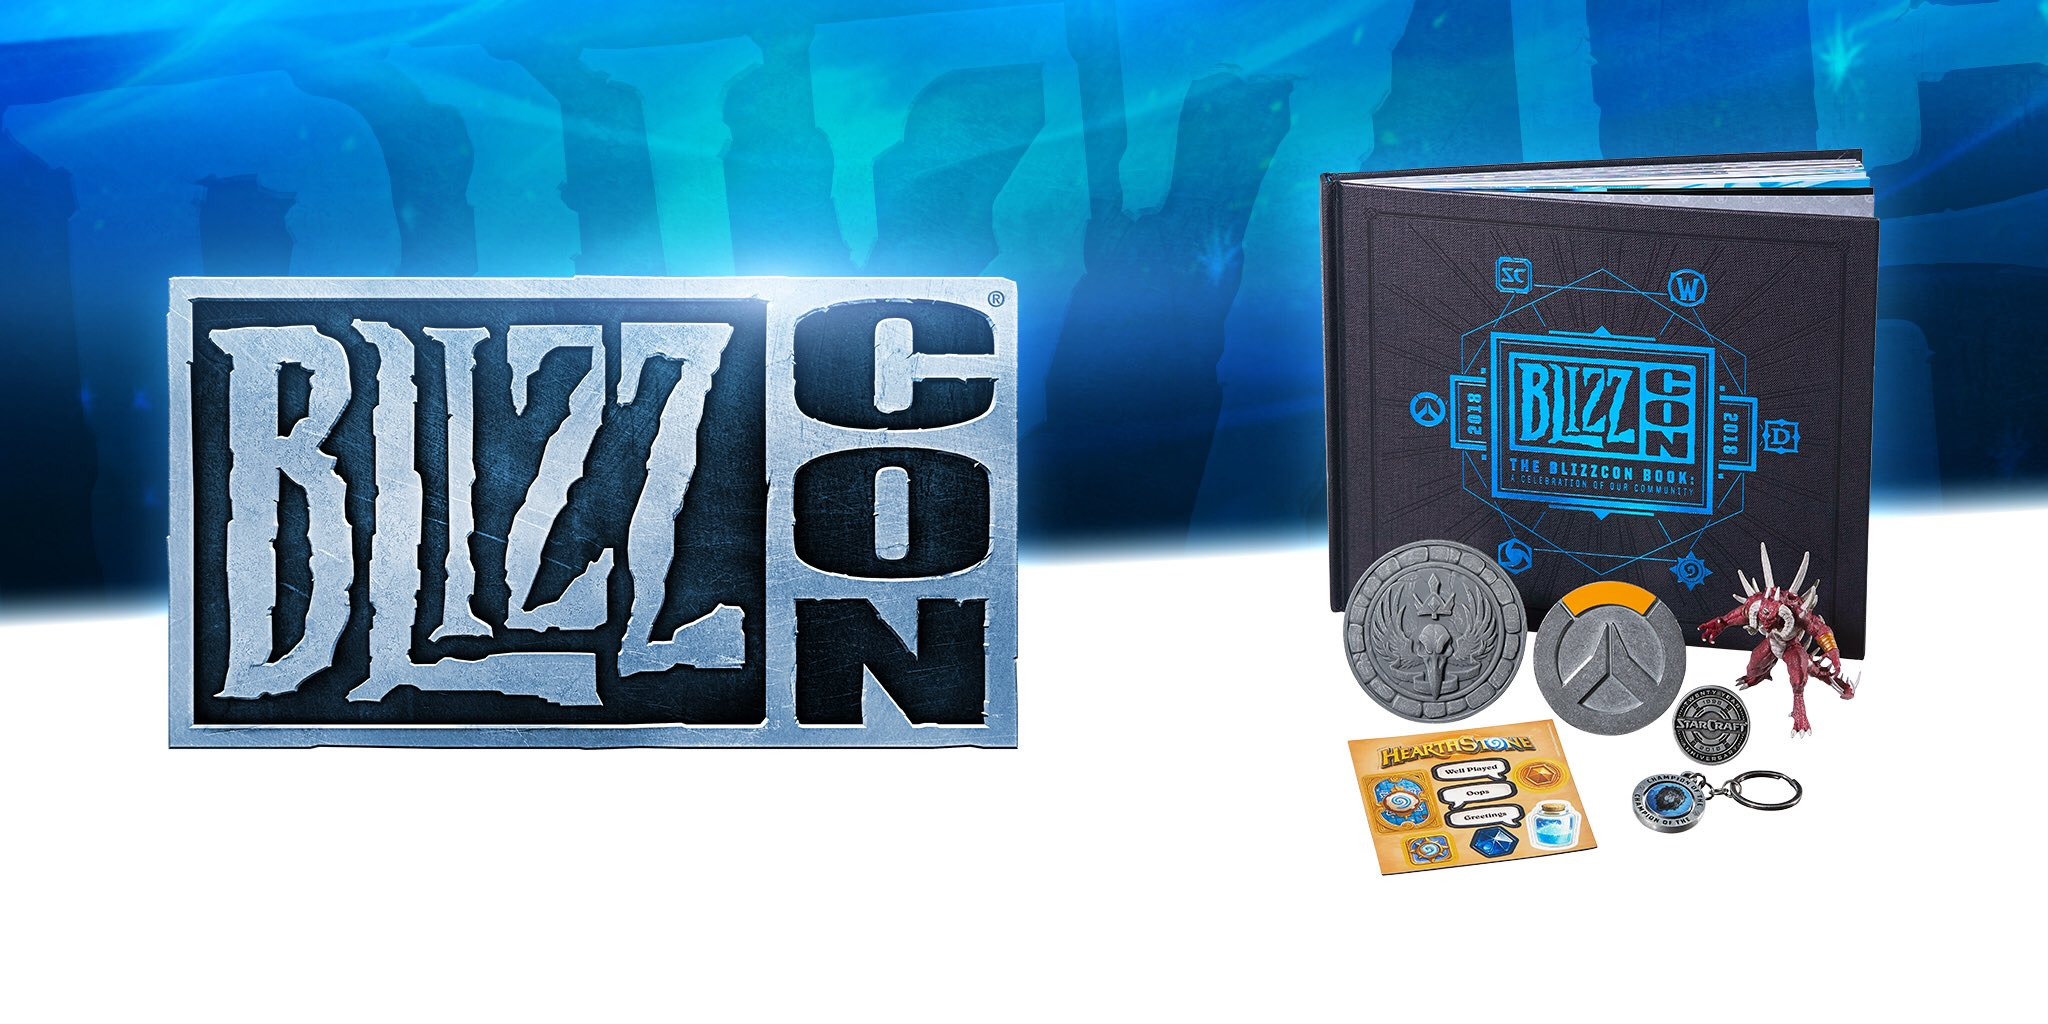 Blizzcon 2018 goody bags are available for order now -- here's what's inside